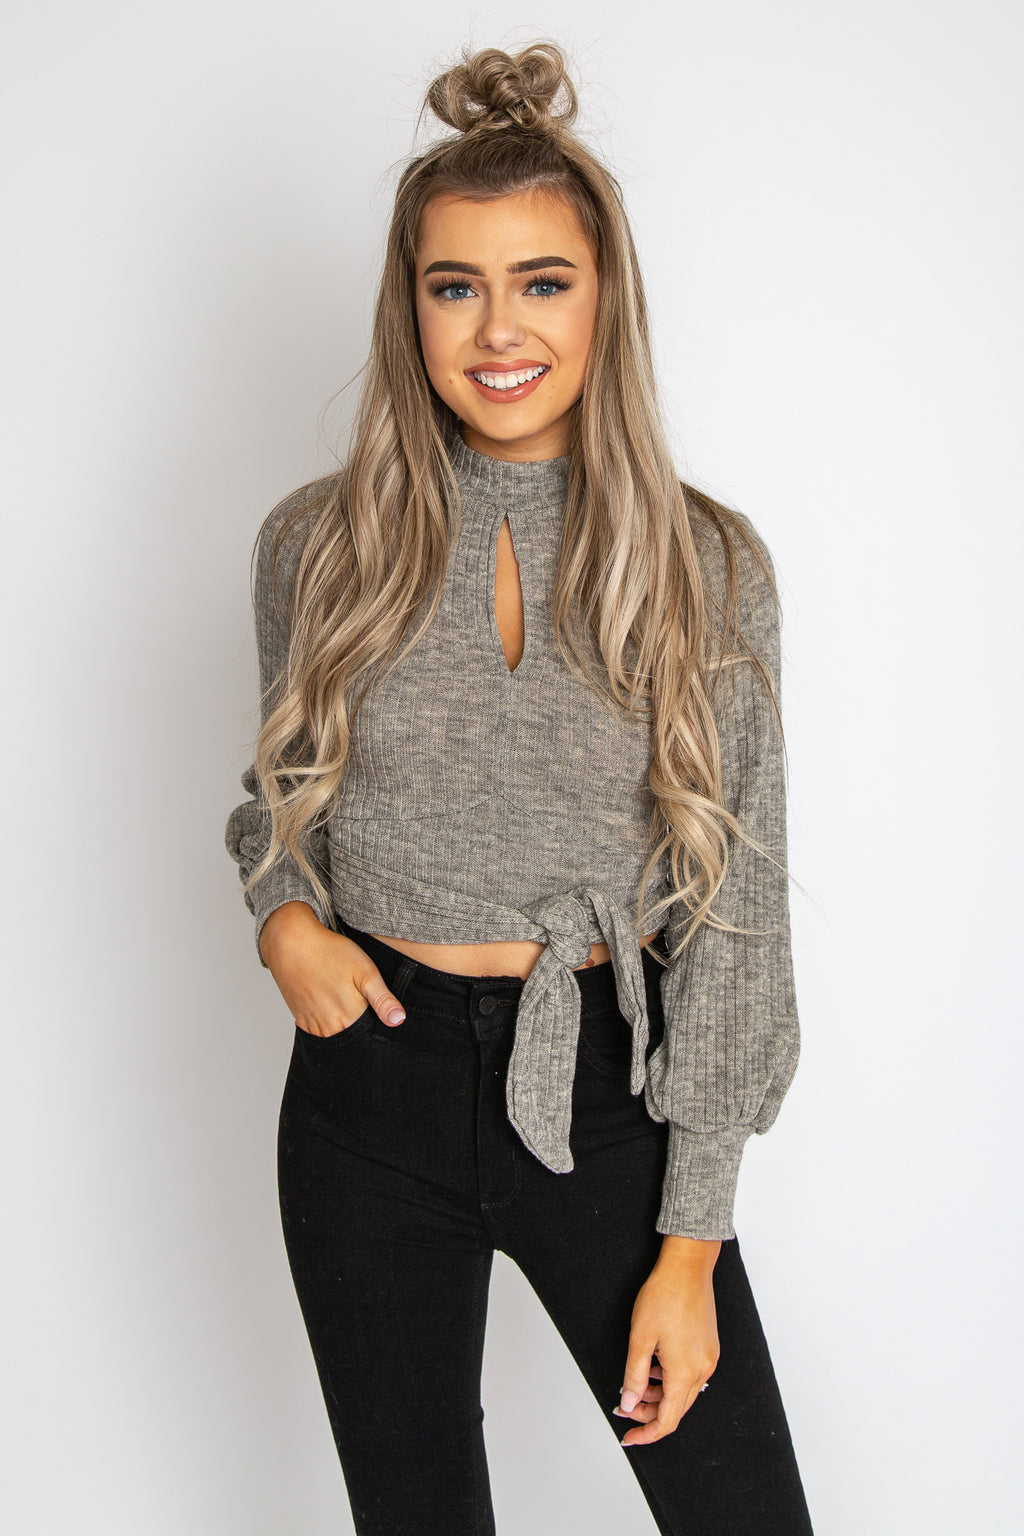 Tana Twisted Crop Top